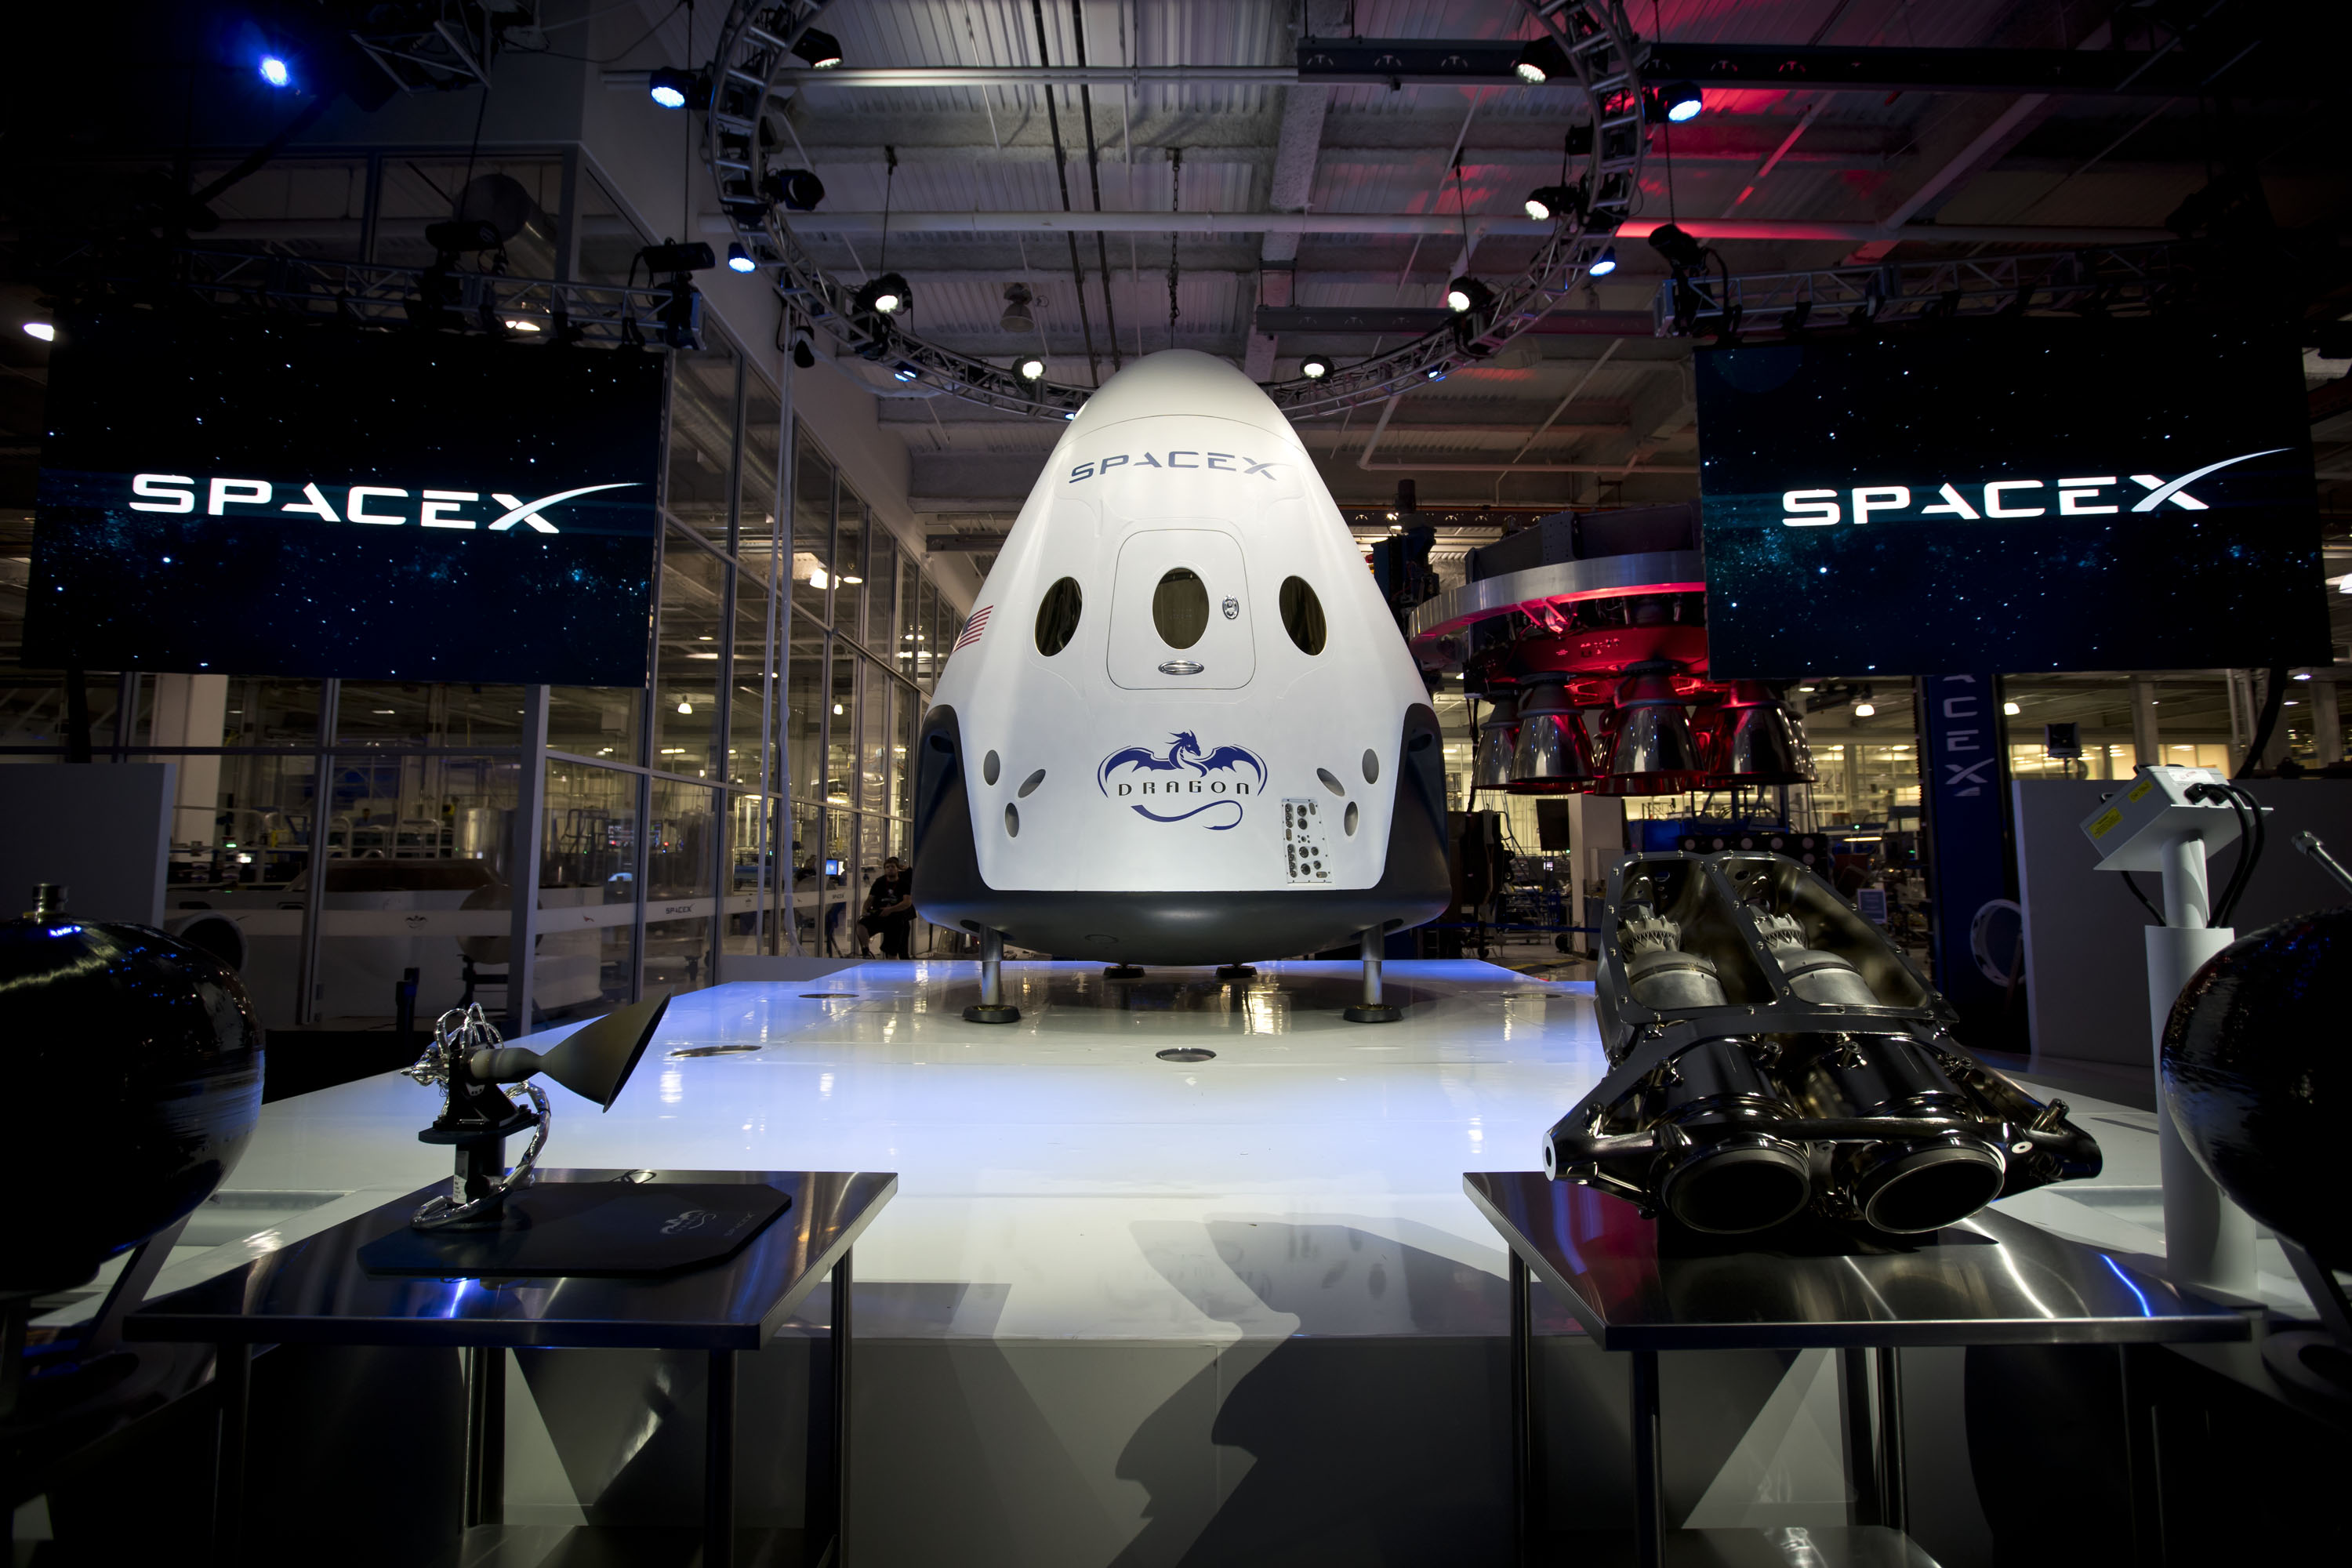 SpaceX_Dragon_v2_(Crew)_unveiled_at_Hawthorne_facility_(16581815487)